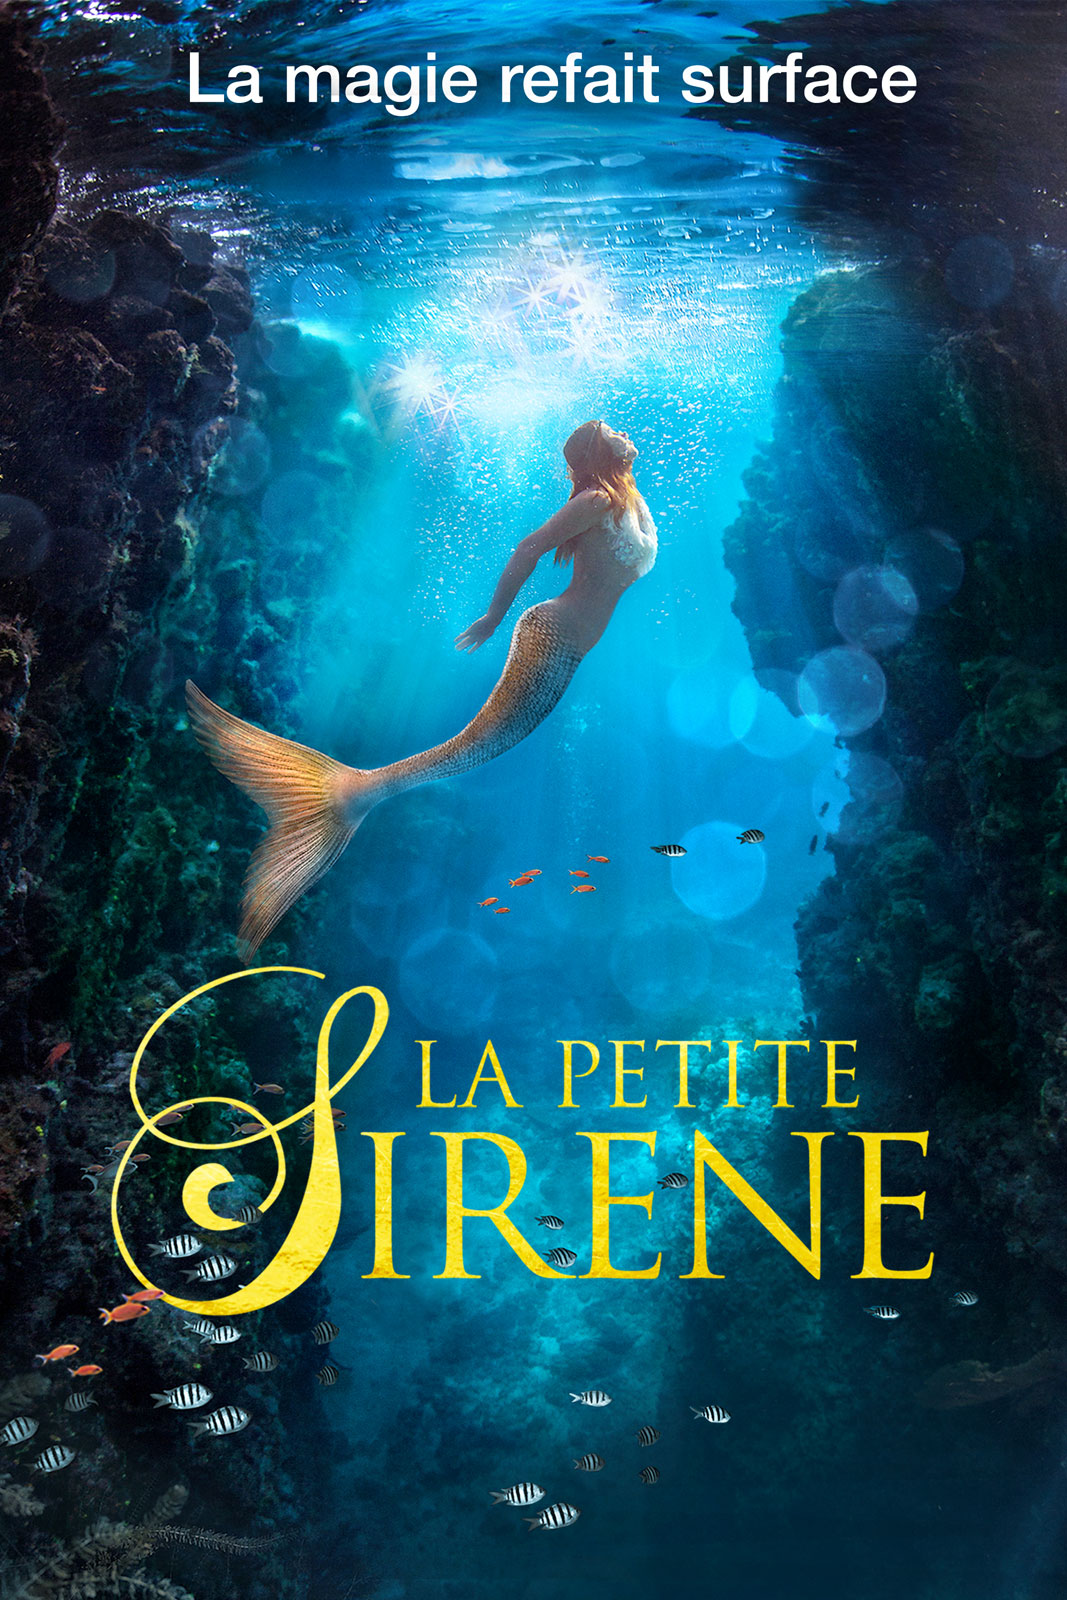 La petite sir ne film 2018 allocin - Barbi sirene 2 film ...